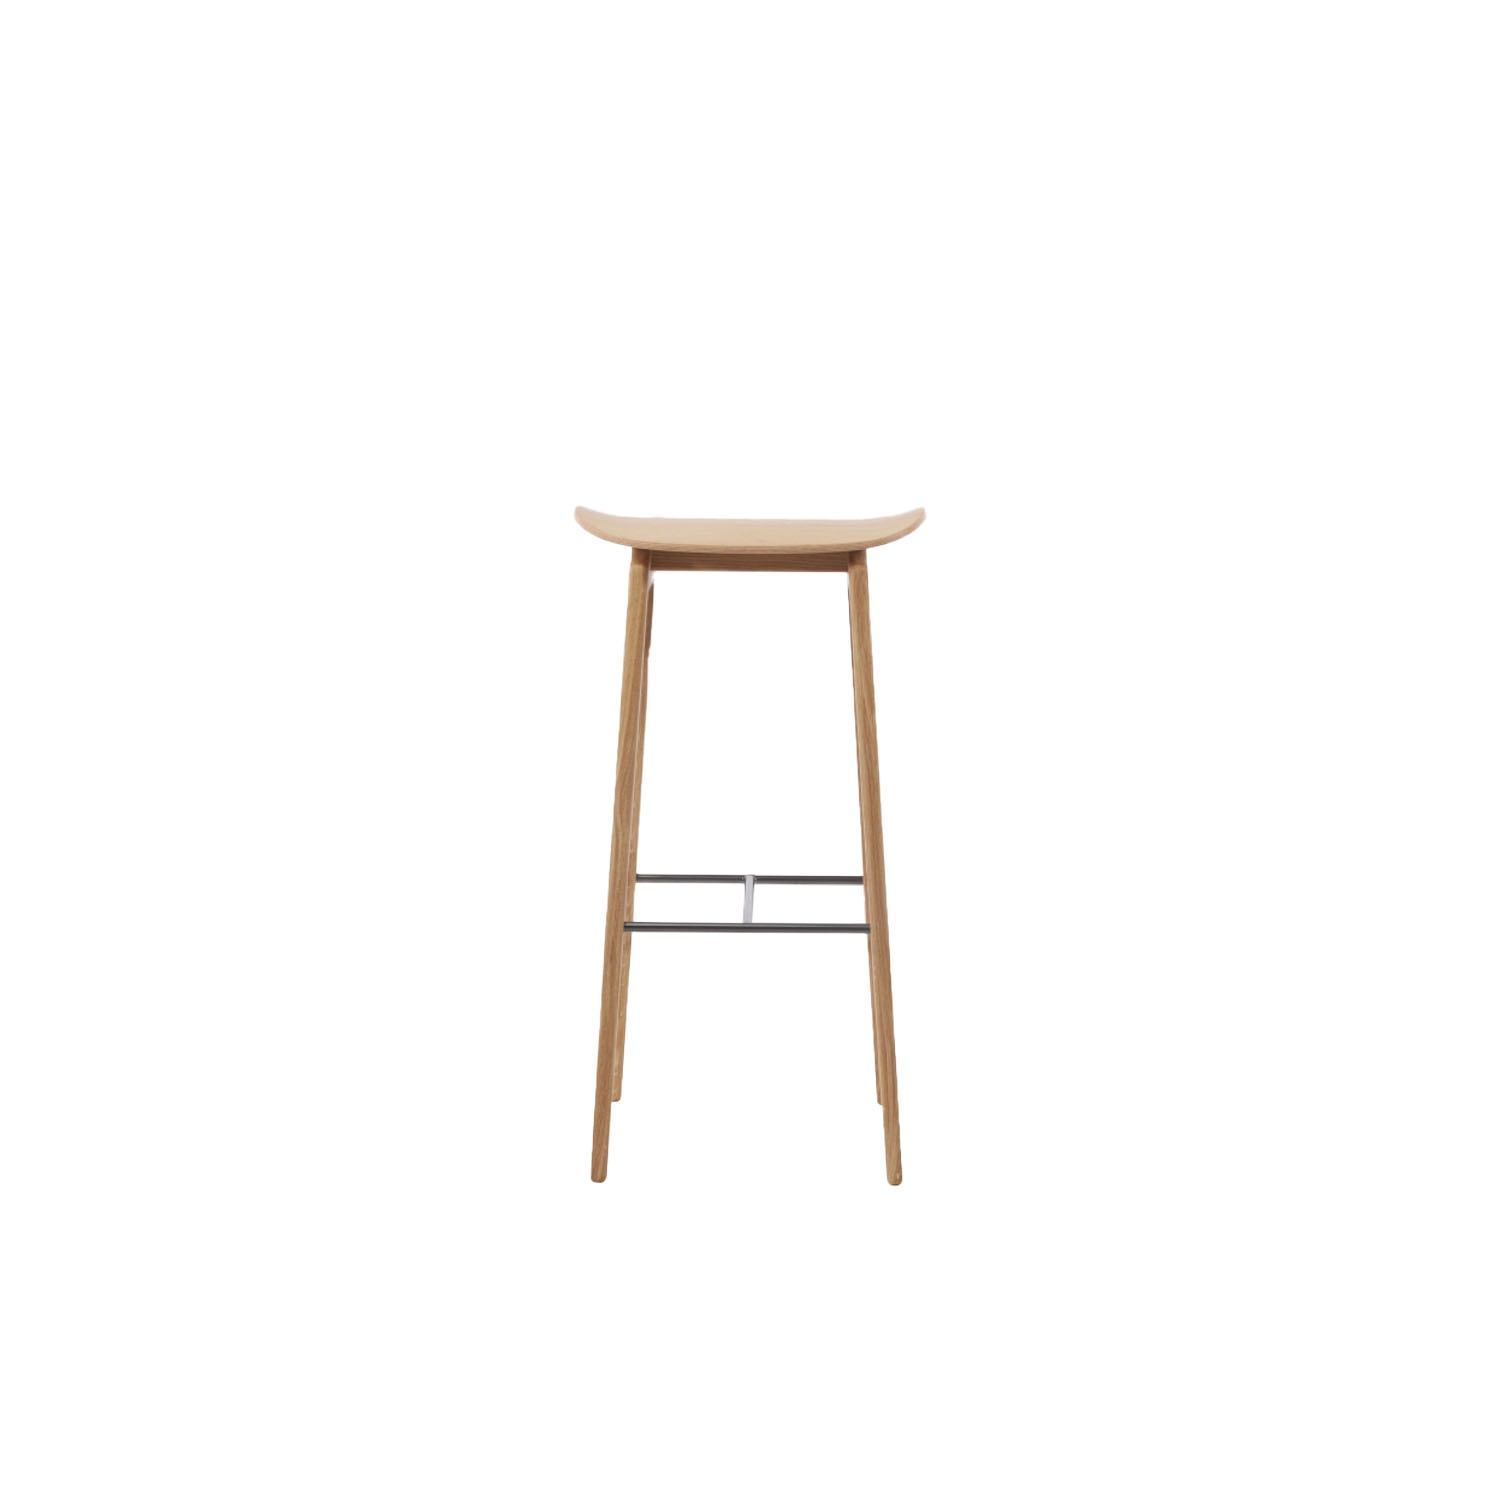 NY11 Bar Stool - The NY11 Bar Chair has a frame hand-crafted from solid white oak and a seat of laminated oak veneer. The leather edition can be upholstered with premium leather or vintage leather from Sørensen Leather.The NY11 series is inspired by traditional Danish school chairs designed throughout the twentieth century. The NY11 Bar Chair comes in two heights, 65 cm and 75 cm, making it perfect for kitchen islands in private homes or as a stylish bar chair for public spaces. | Matter of Stuff